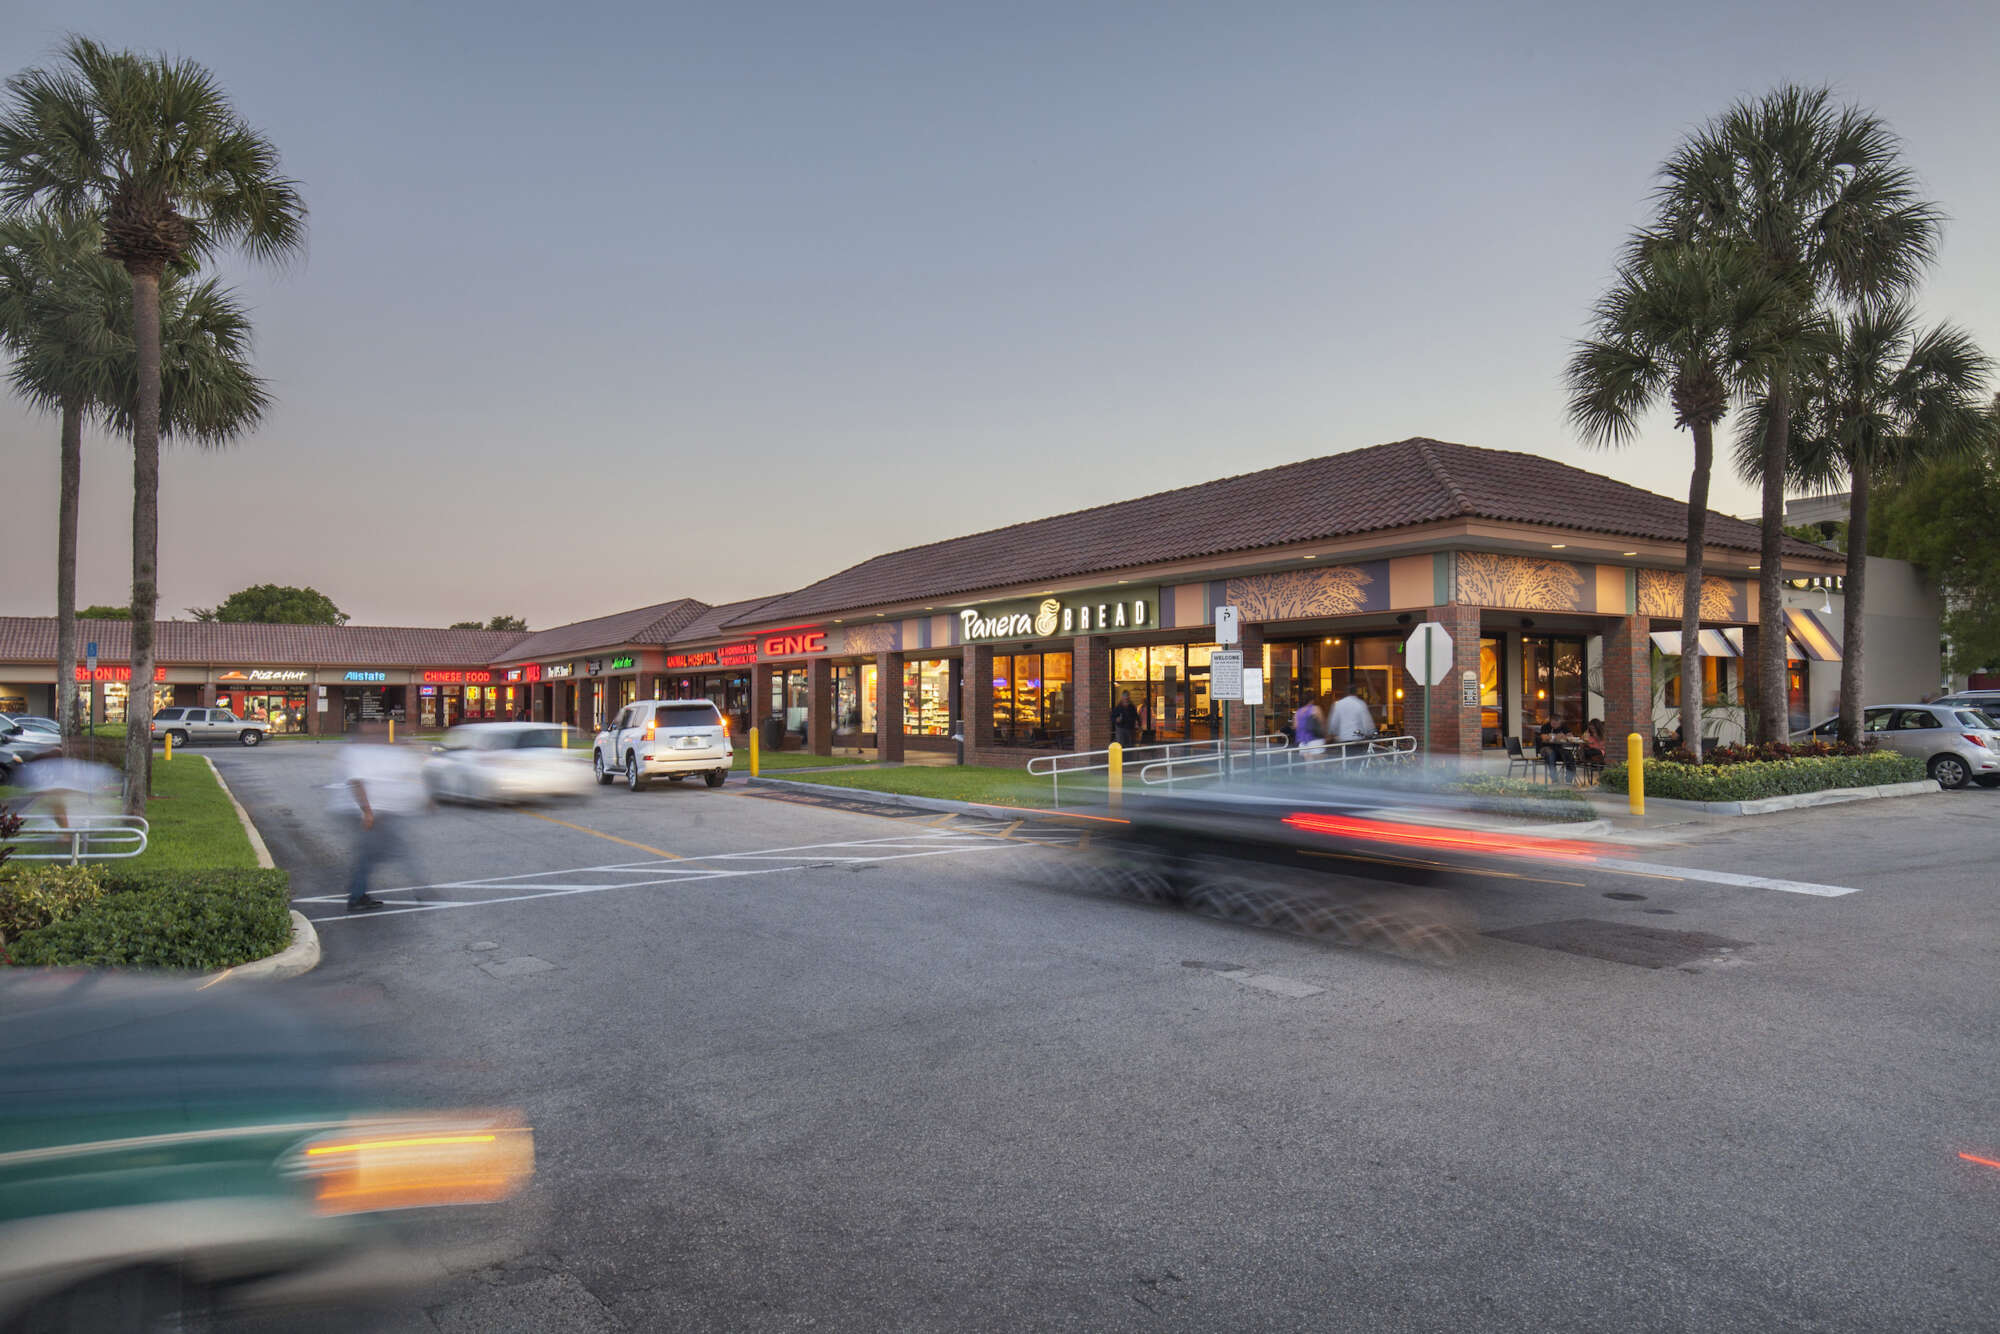 Country Club Plaza exterior with rows of shops and cars driving in parking lot